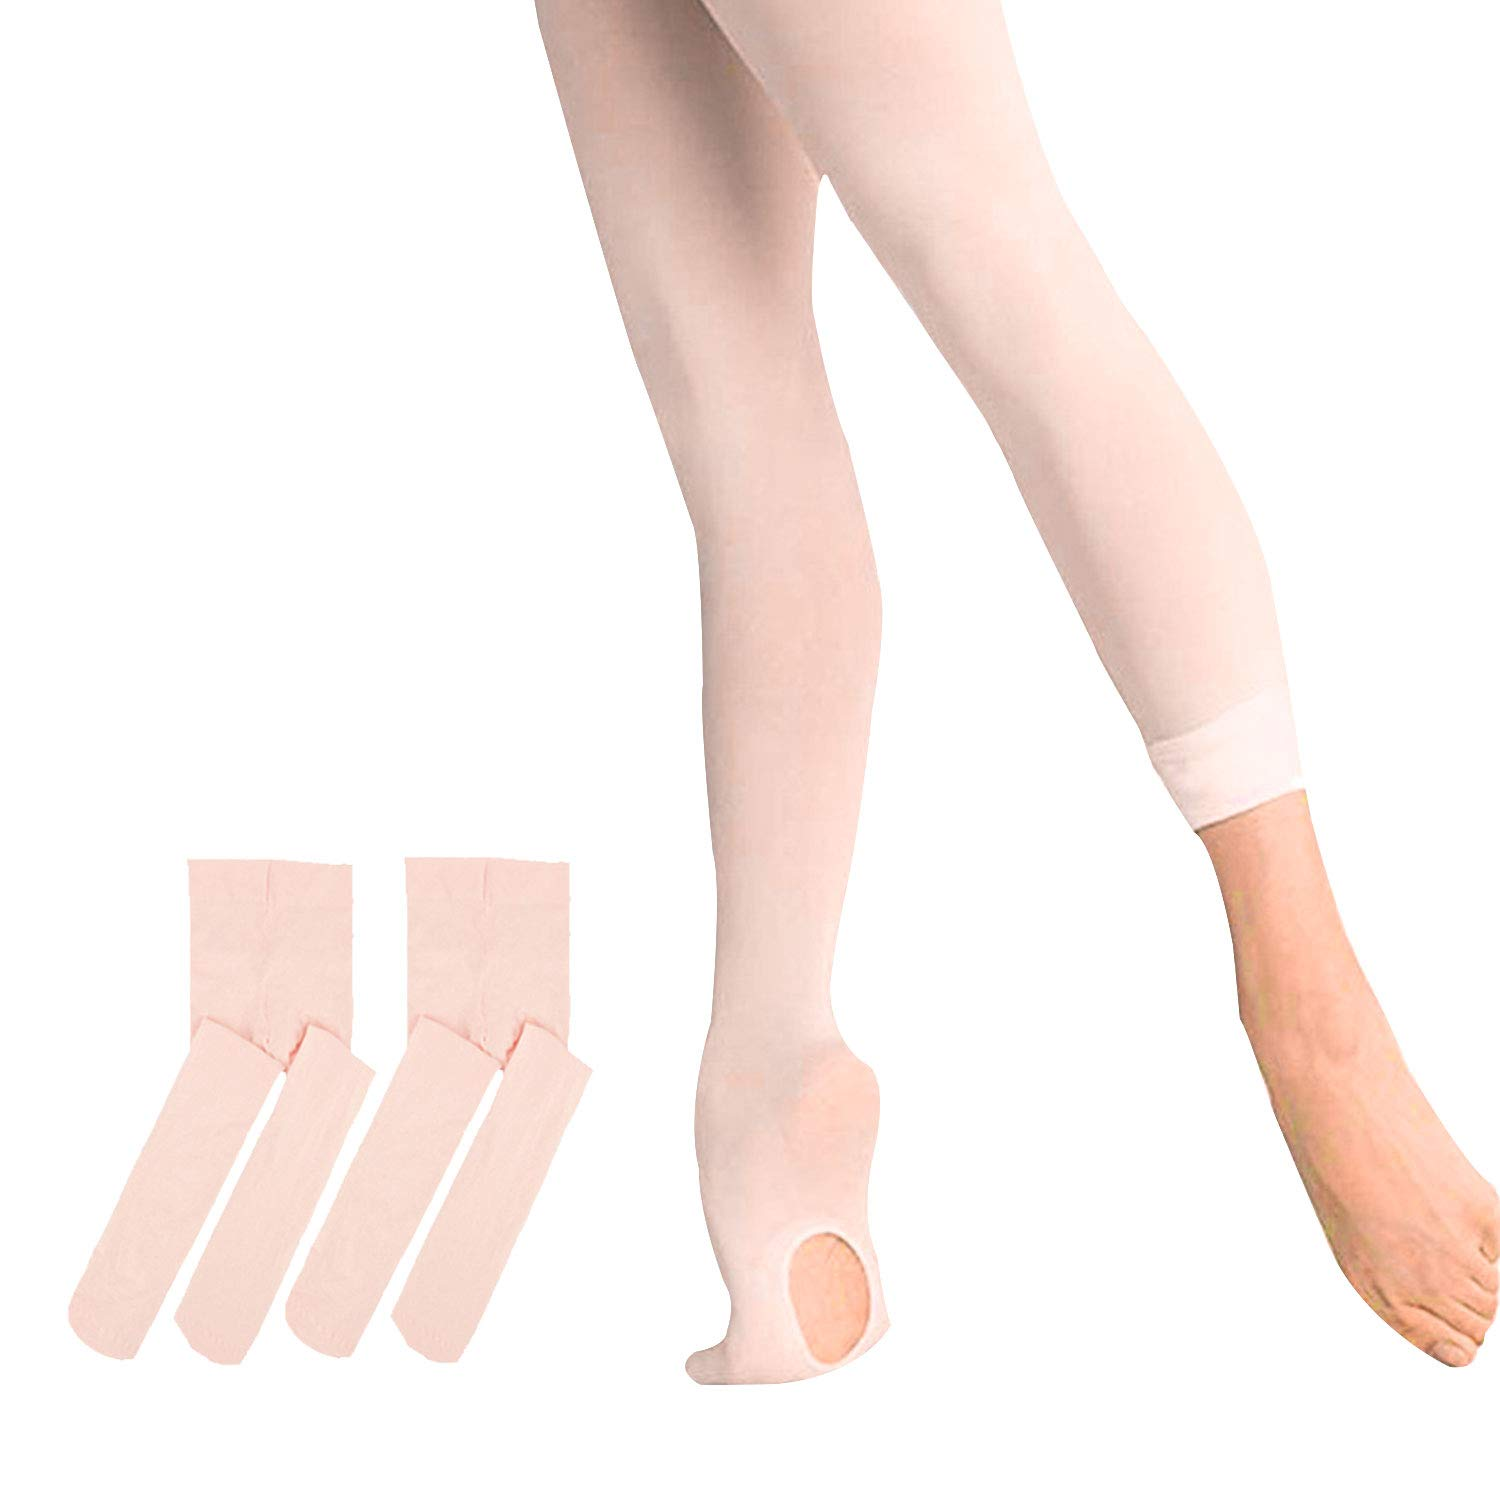 WEANMIX 2 Pairs Ballet Tights for Girls, 60 Denier Ultra Soft Pro Dance Tights With Holes